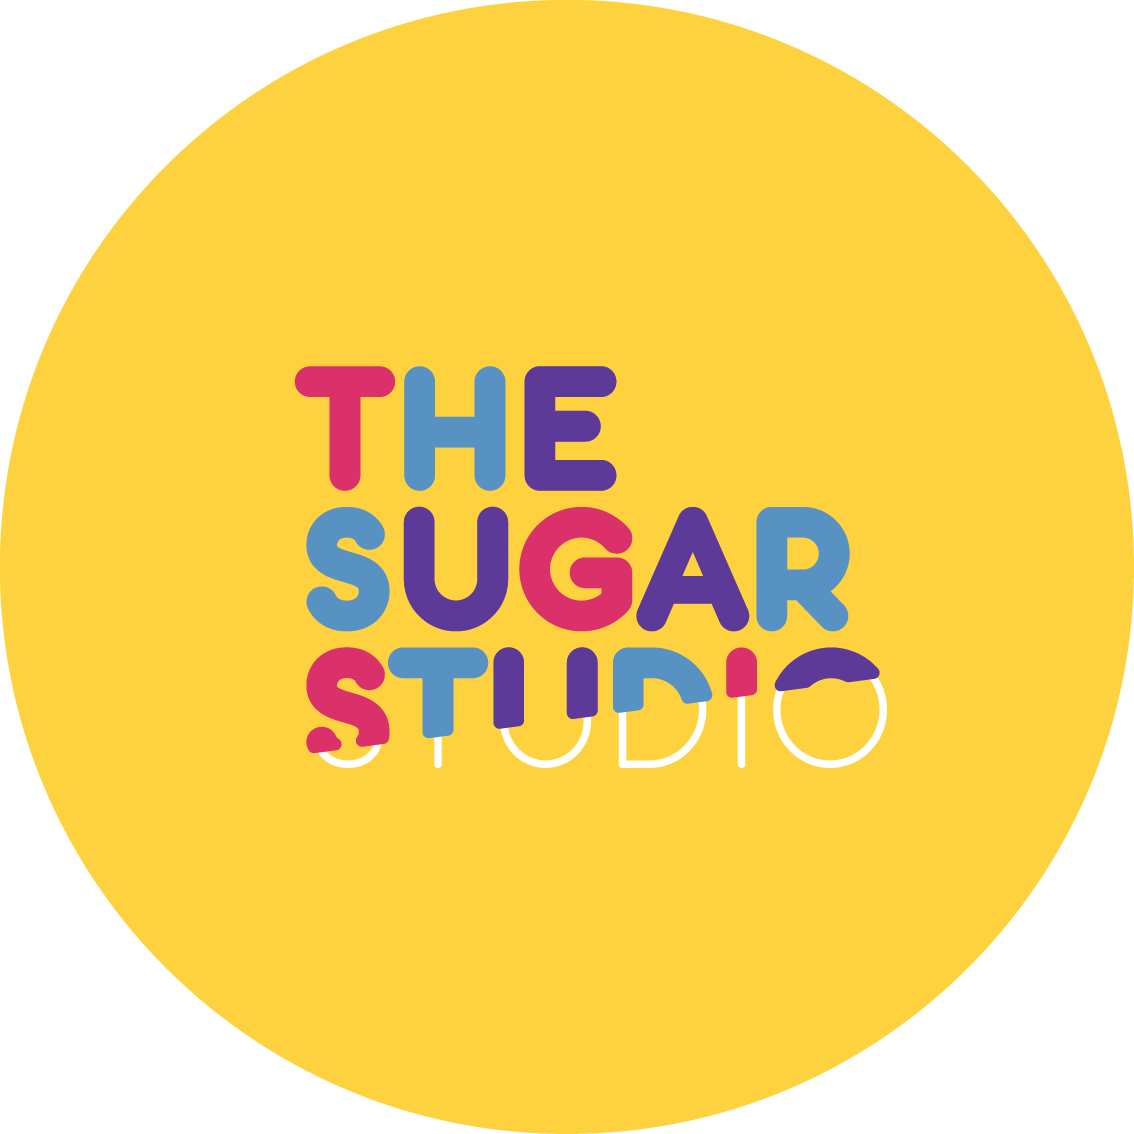 thesugarstudio.co.uk